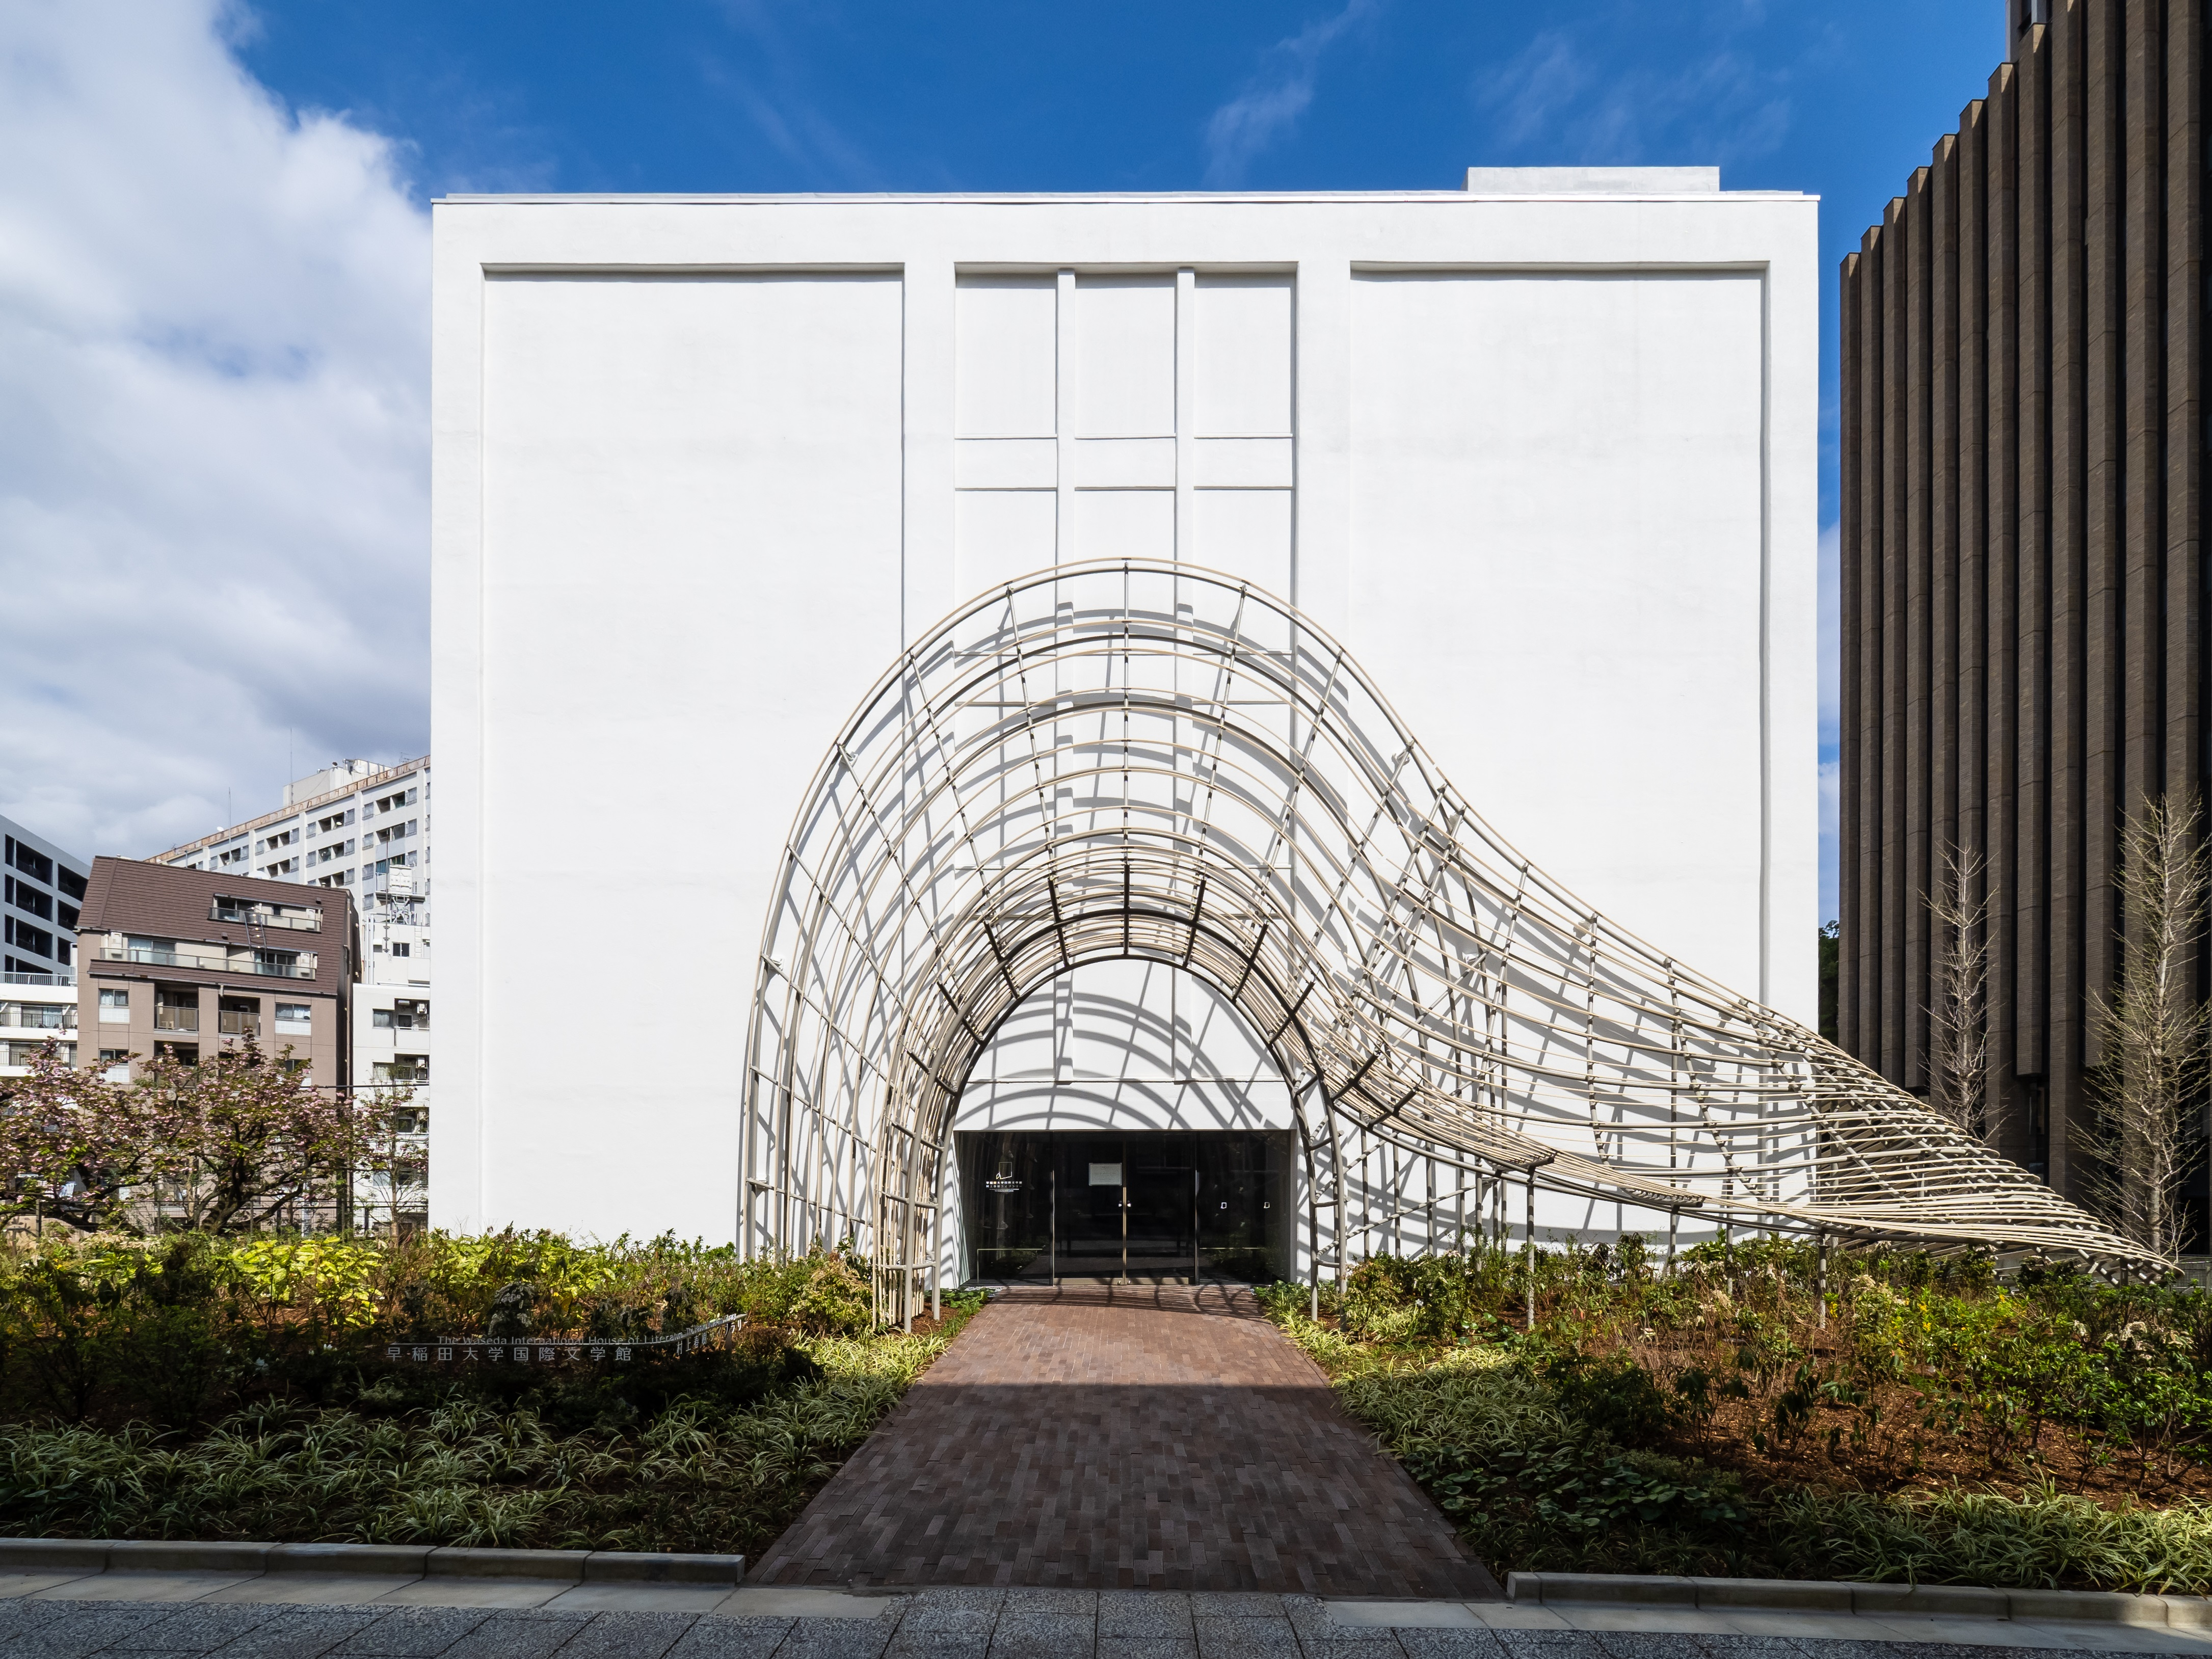 A photo of the Waseda International House of Literature in Tokyo.